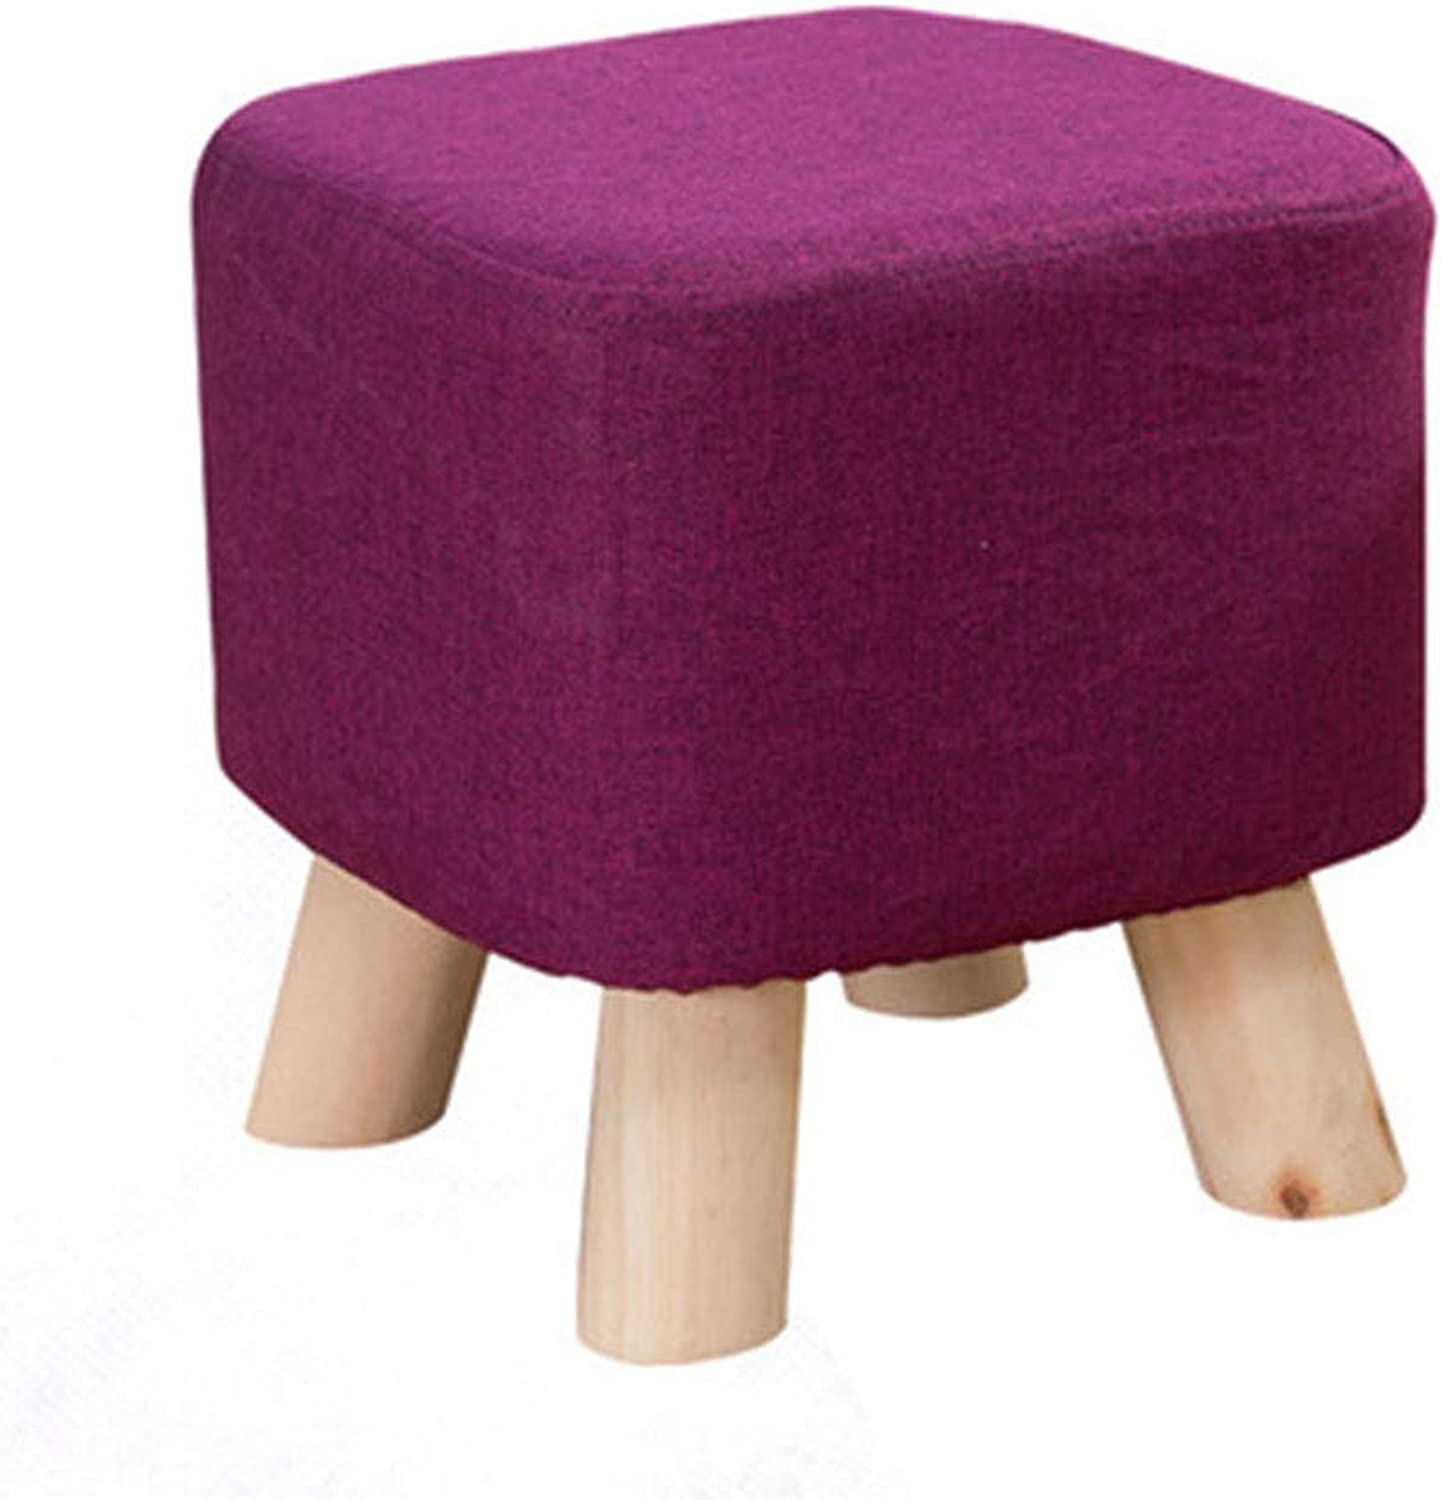 YONGYONG Simple Modern Block Creative Porch Stool Solid Wood Stool Coffee Table Living Room Seat Bench Fabric shoes Bench Sofa Square Stool (color   3)